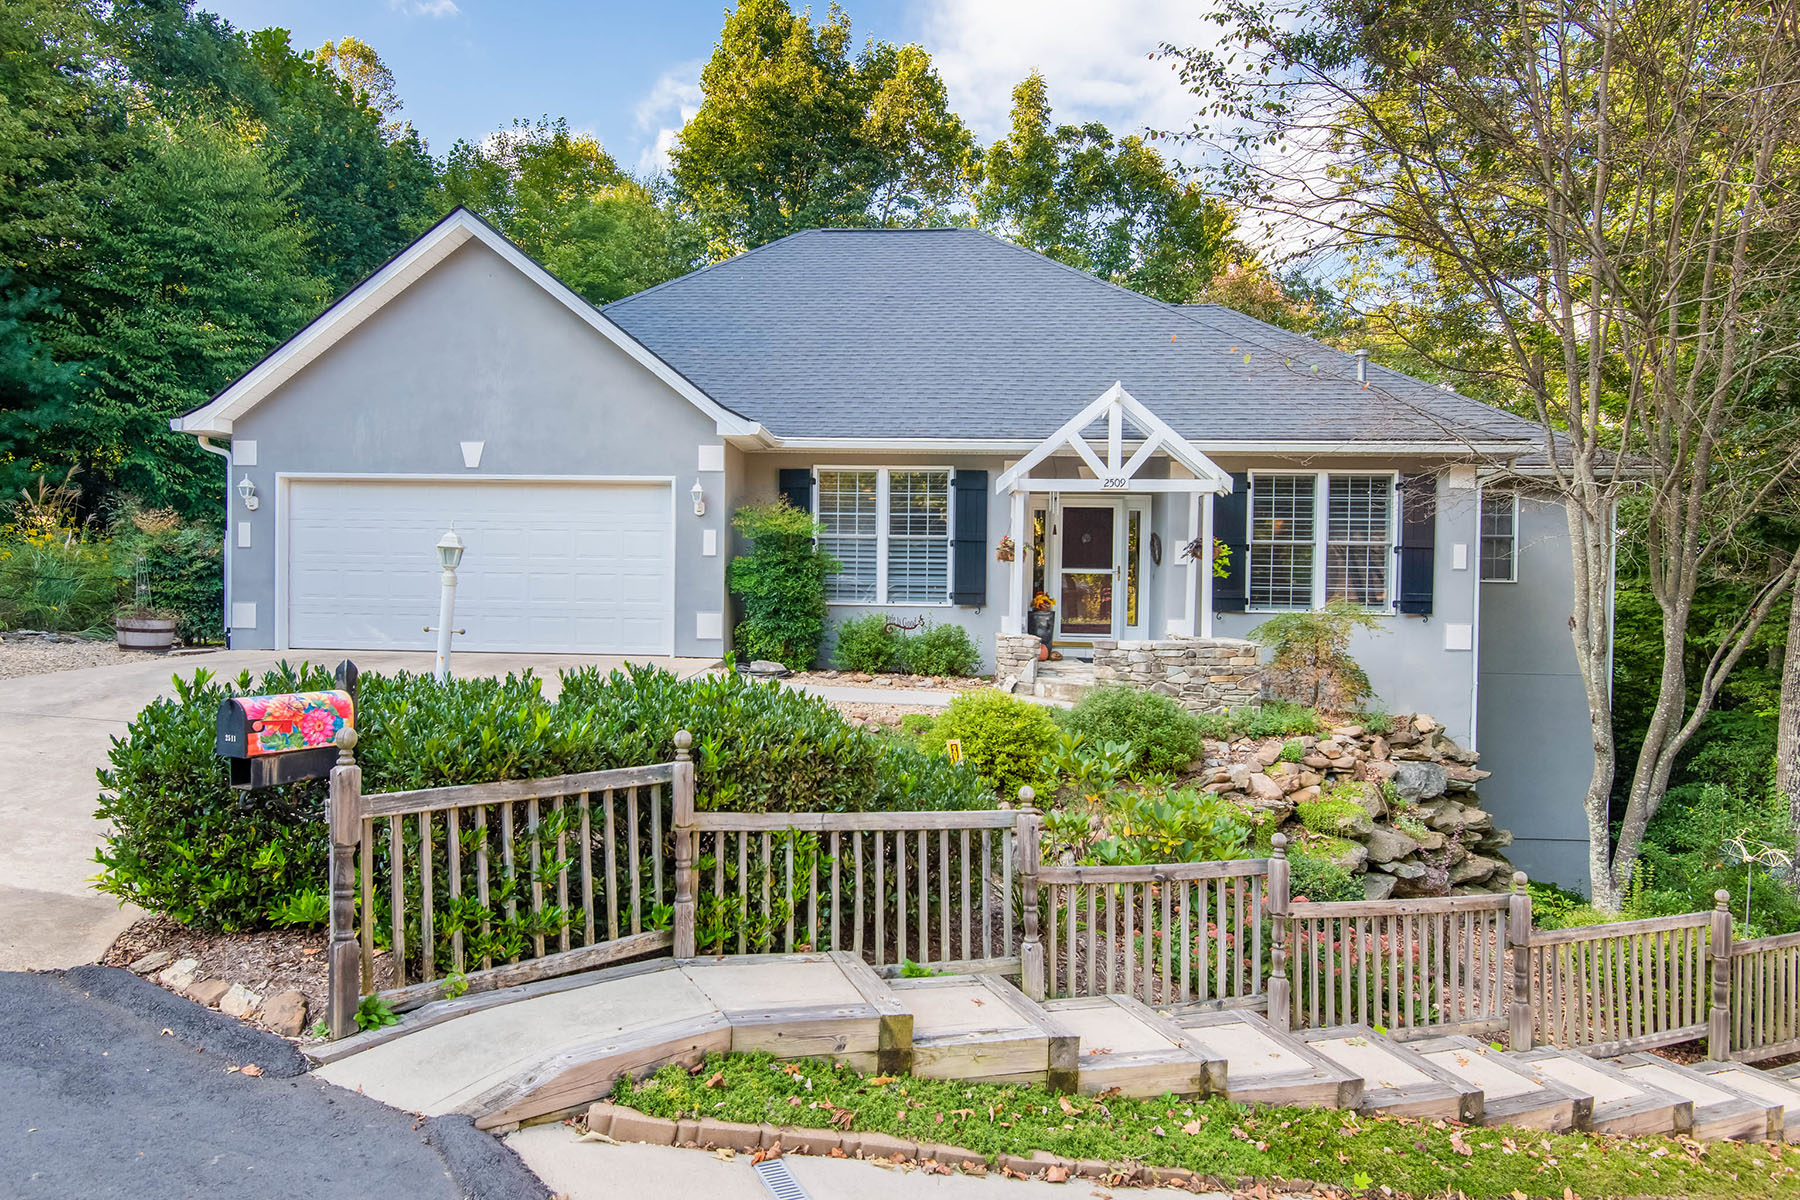 Single Family Homes for Sale at CARRIAGE PARK 2509 Carriage Falls Ct Hendersonville, North Carolina 28791 United States